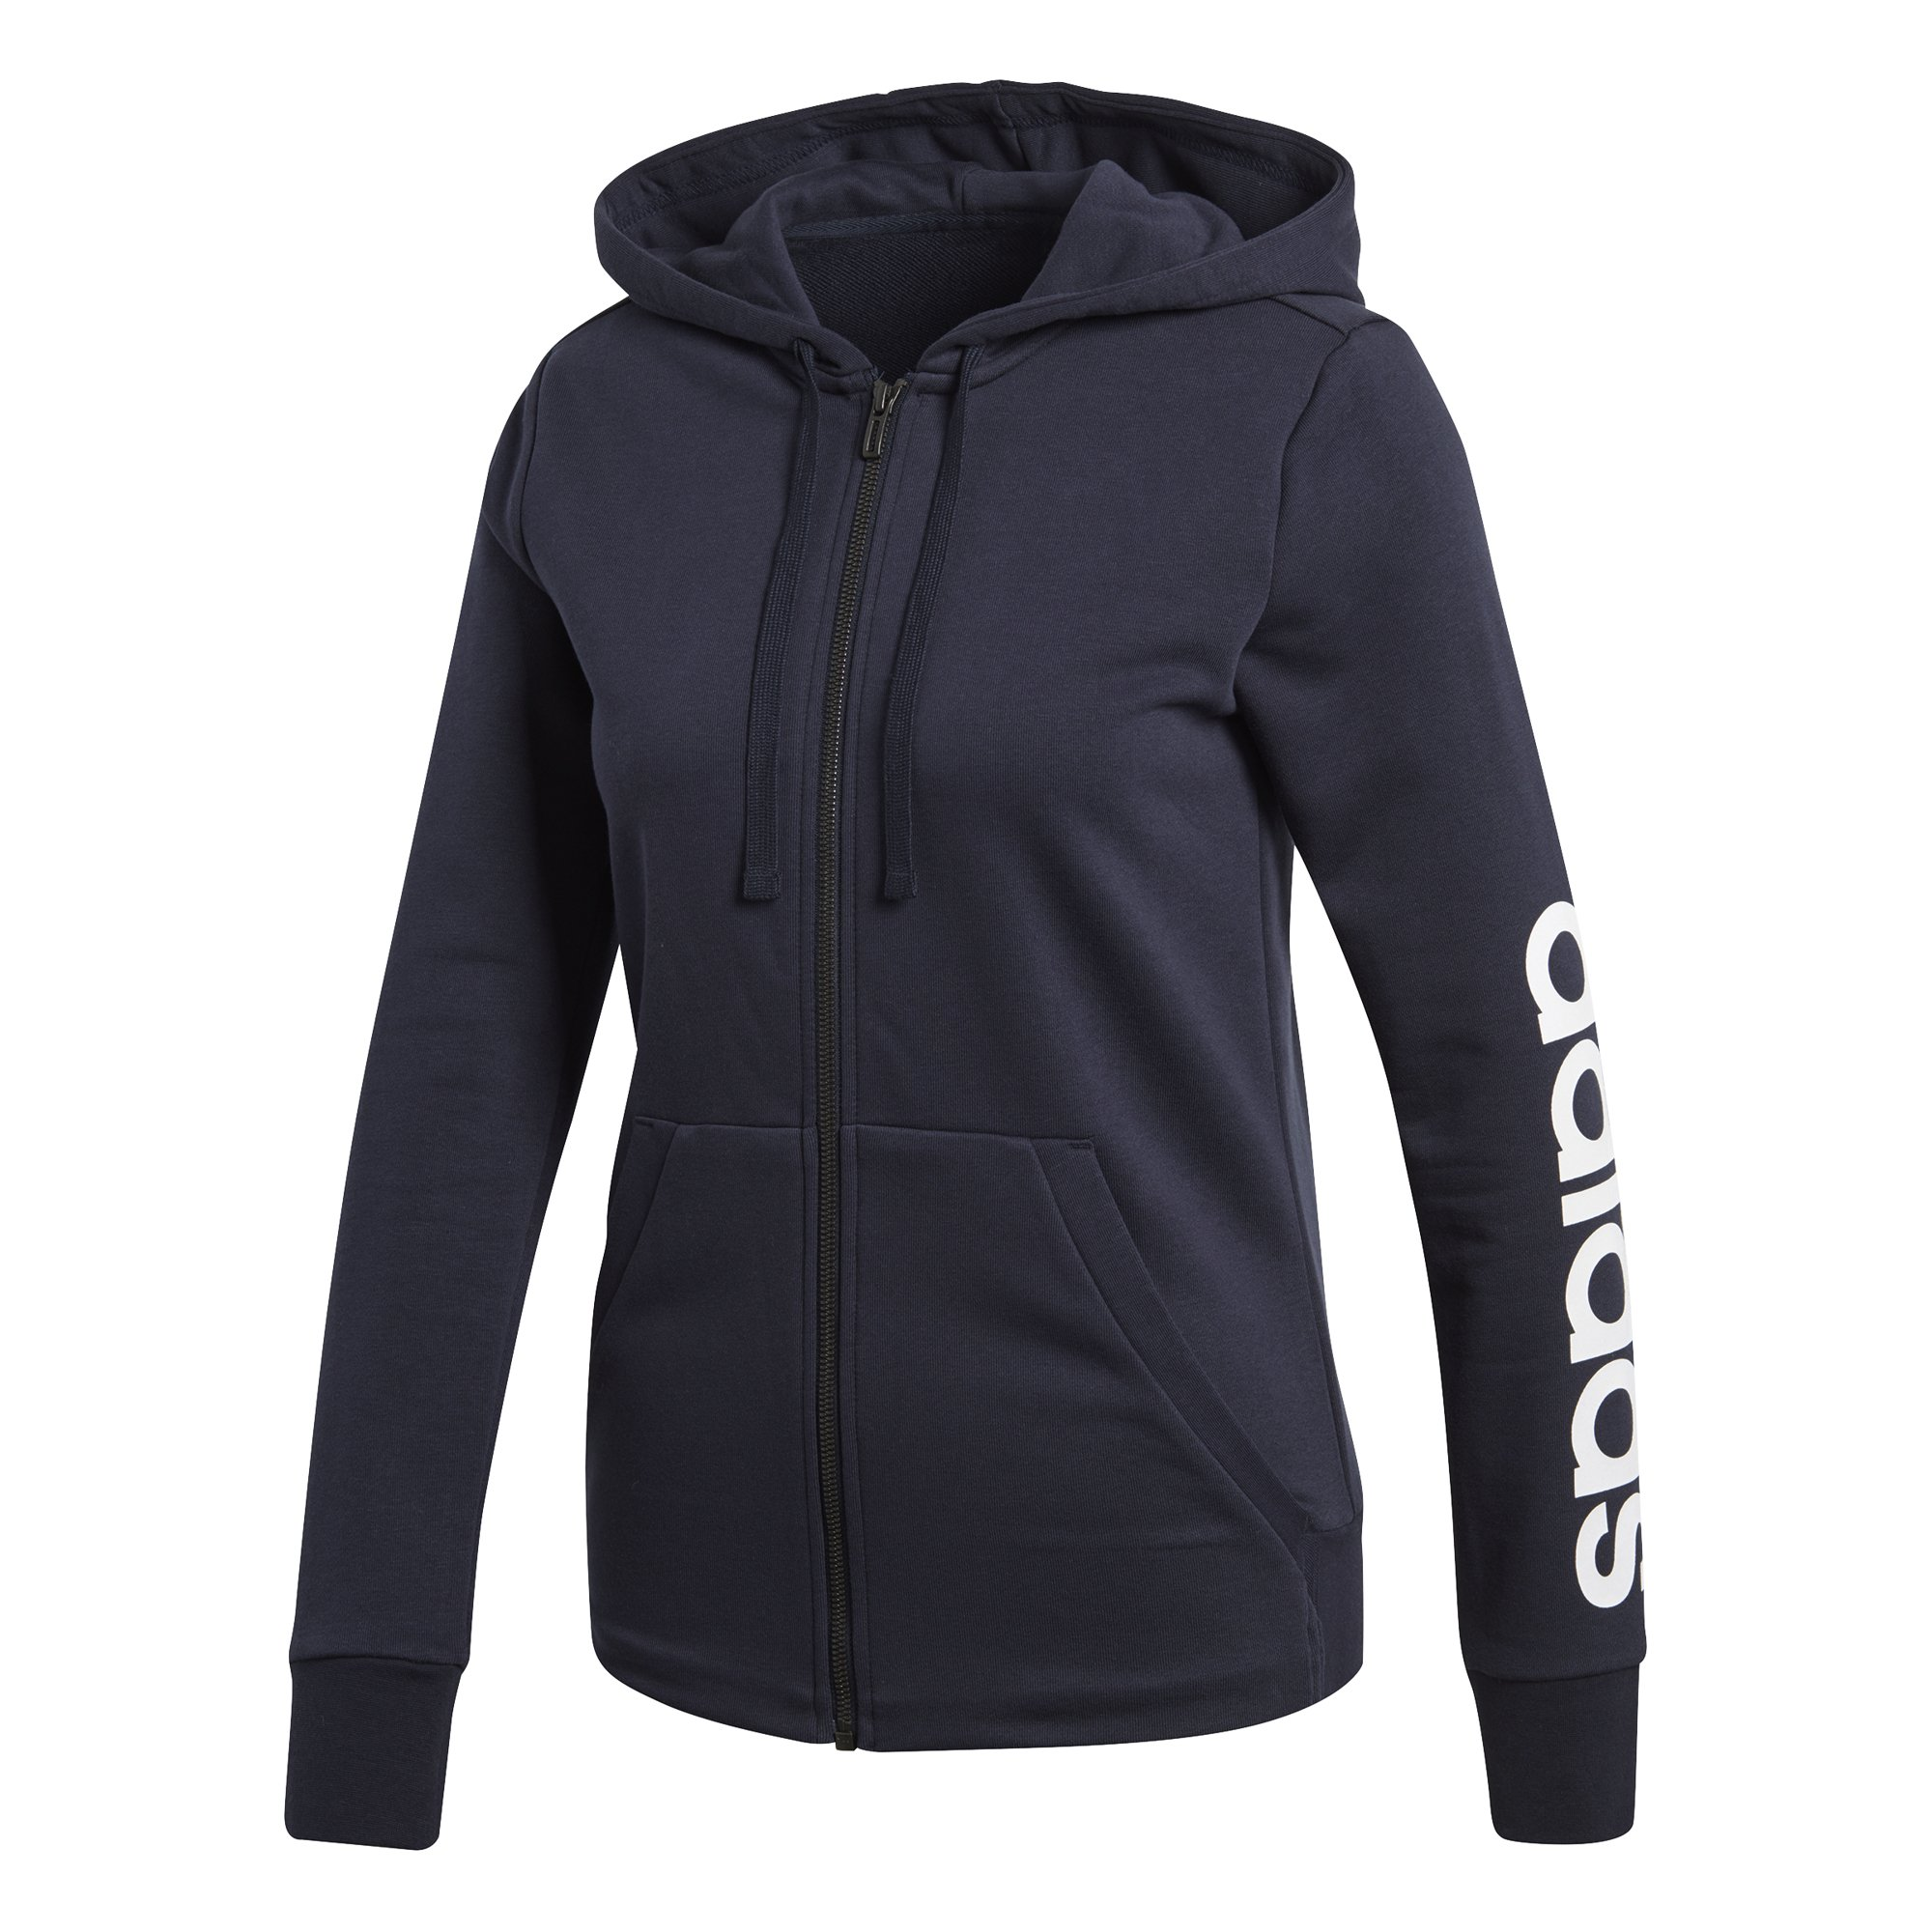 adidas Women's Essentials Linear Full Zip Hoodie Legend Ink/White X-Small by adidas (Image #2)